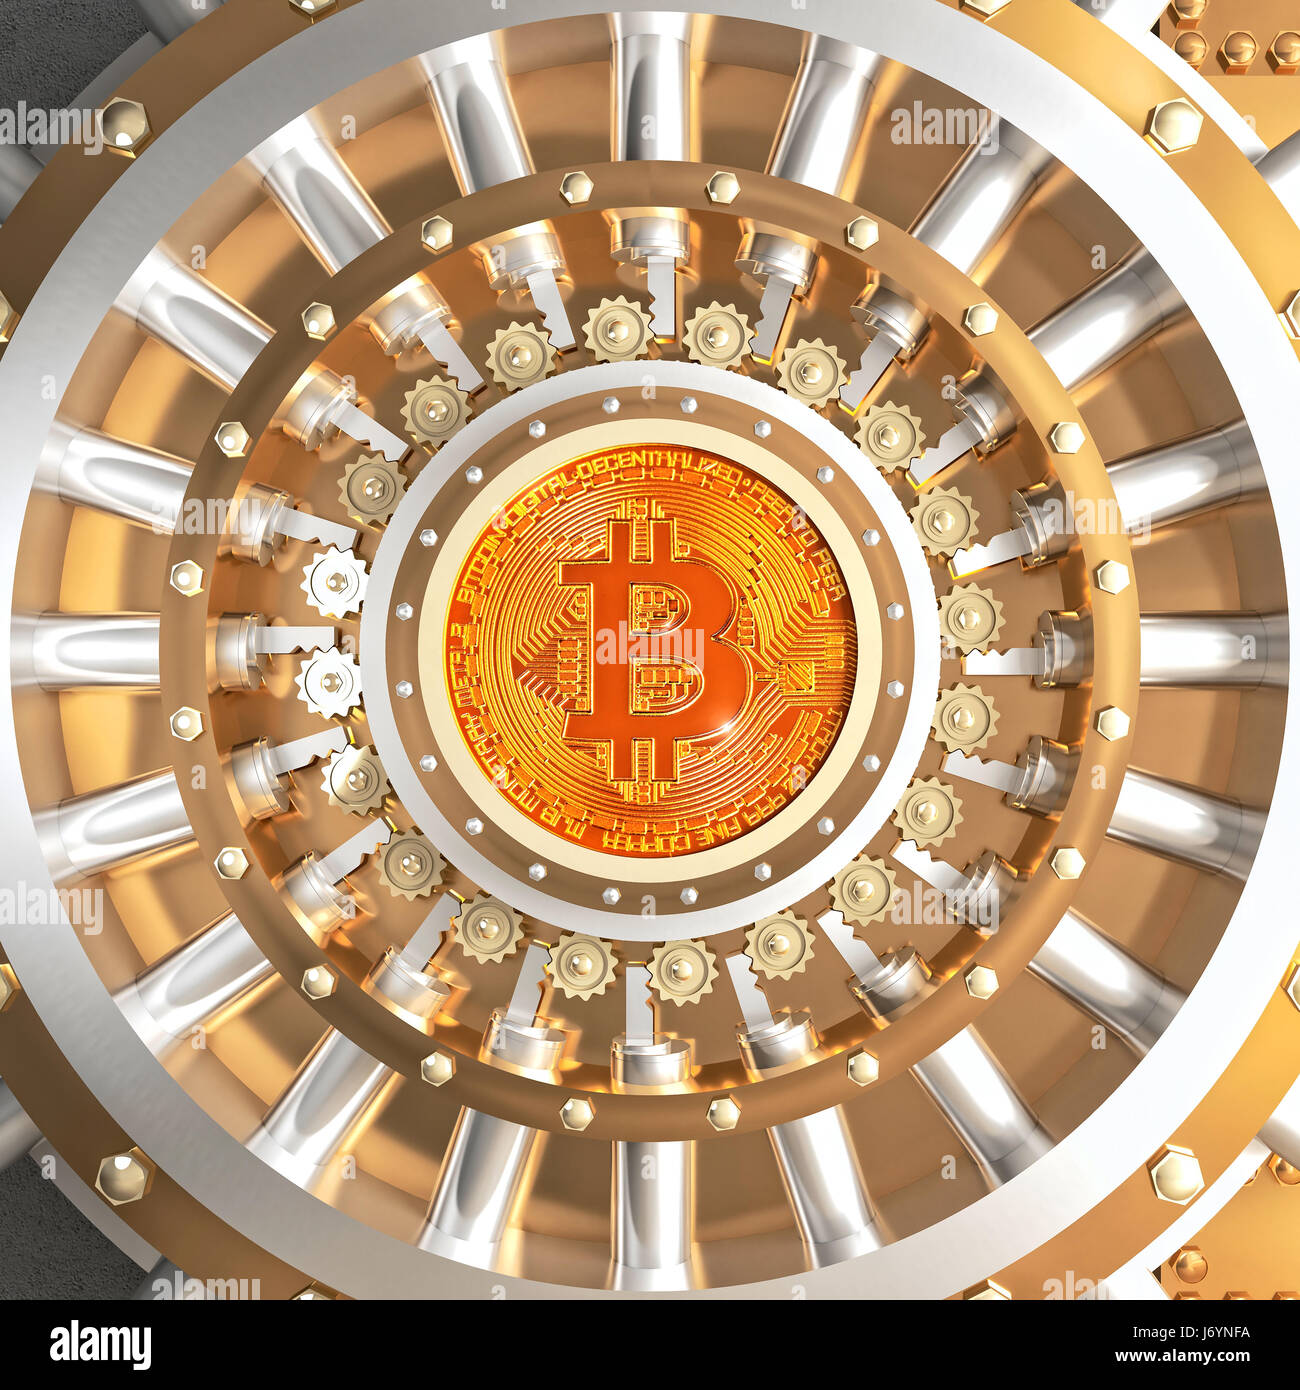 concept of bitcoin crypto currency safe 3d rendering image - Stock Image